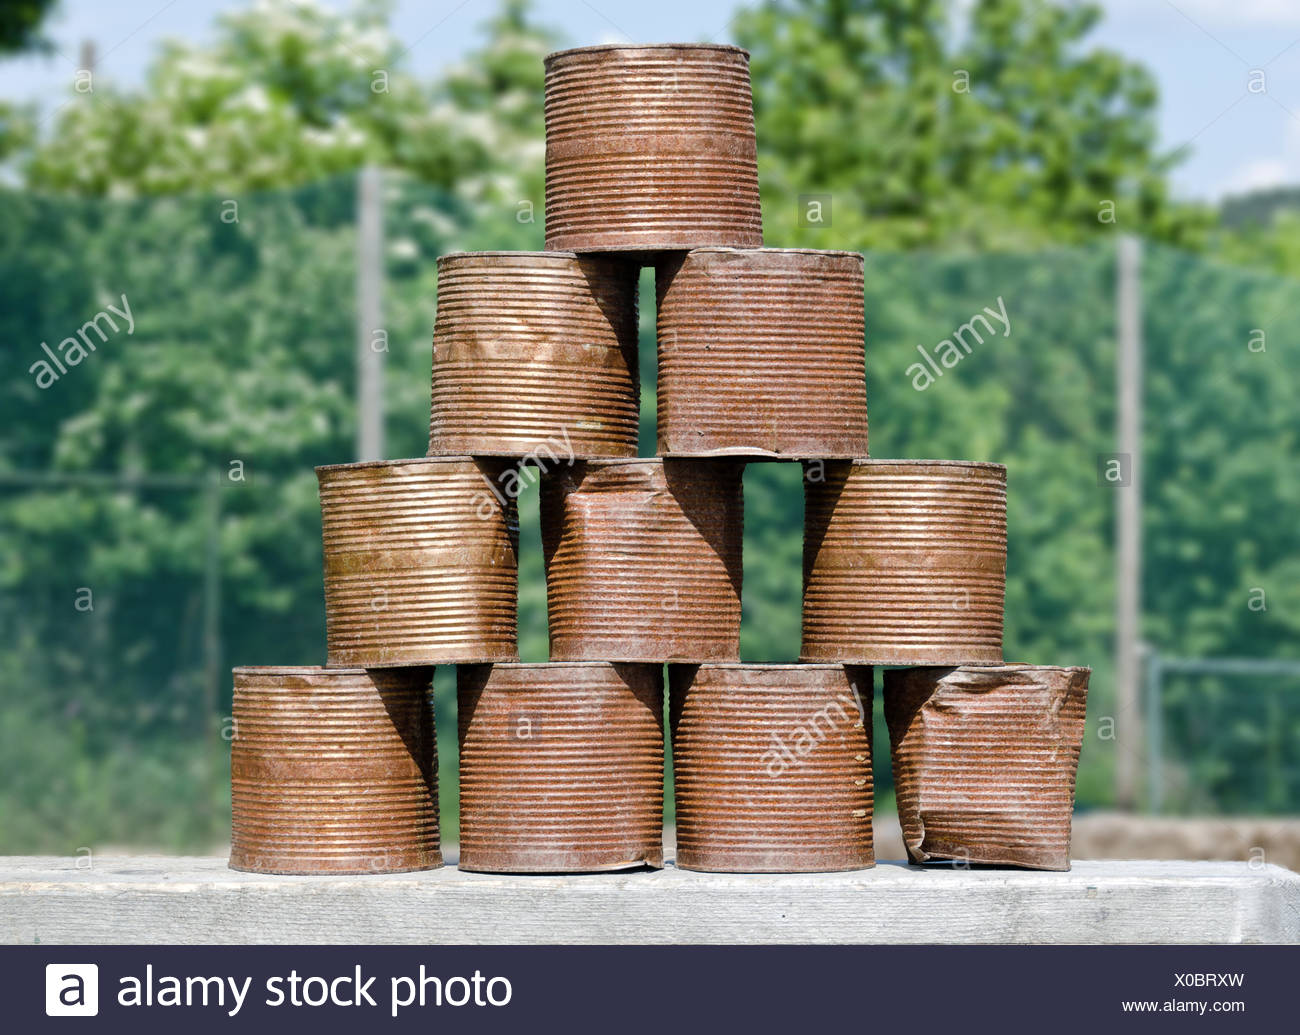 stack of rusty tins - Stock Image